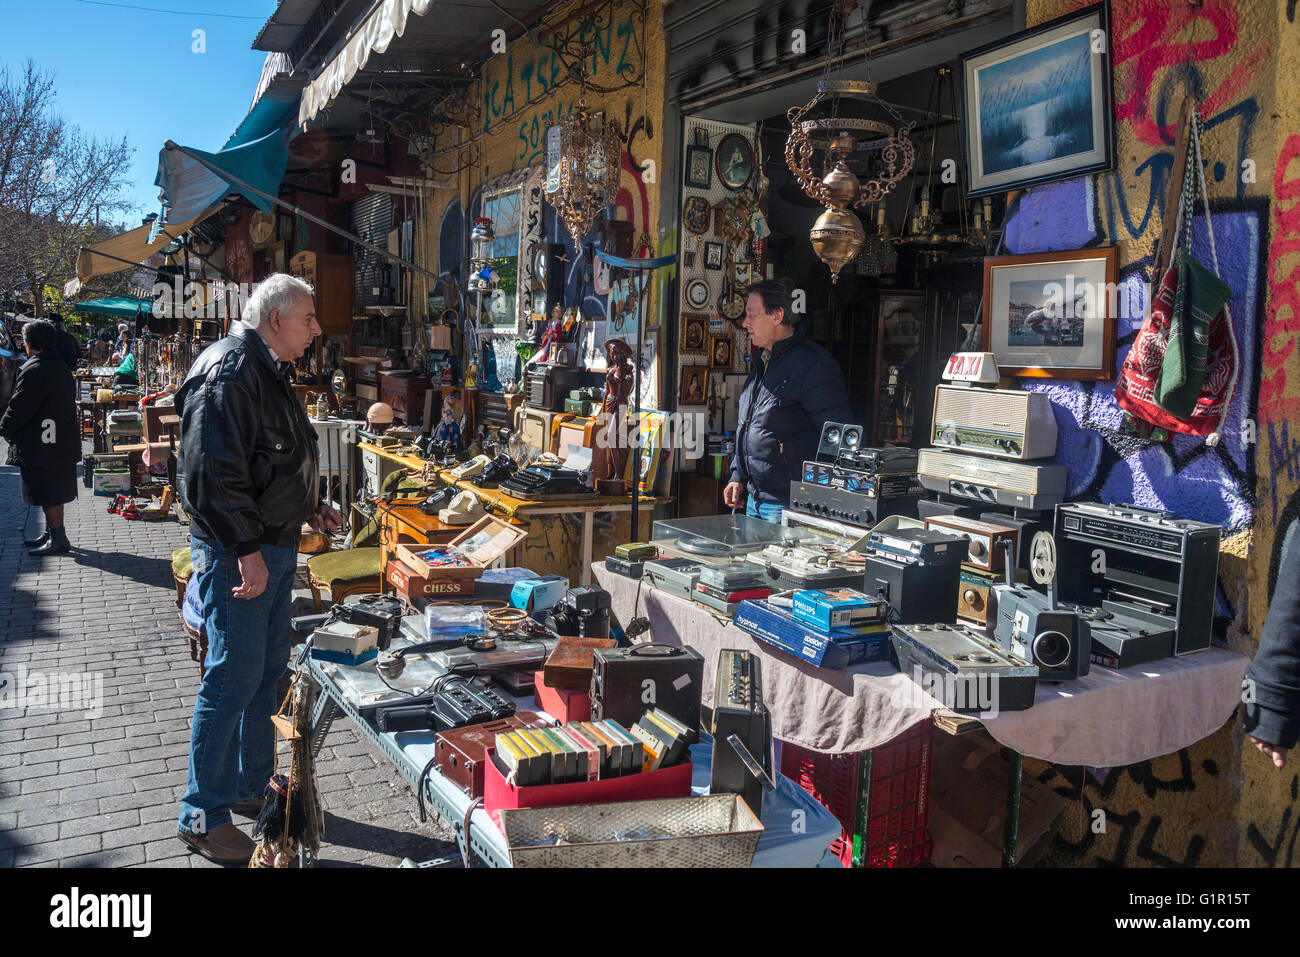 The antiques and bric-a-brac market at Monastiraki, in the centre of Athens, Greece - Stock Image